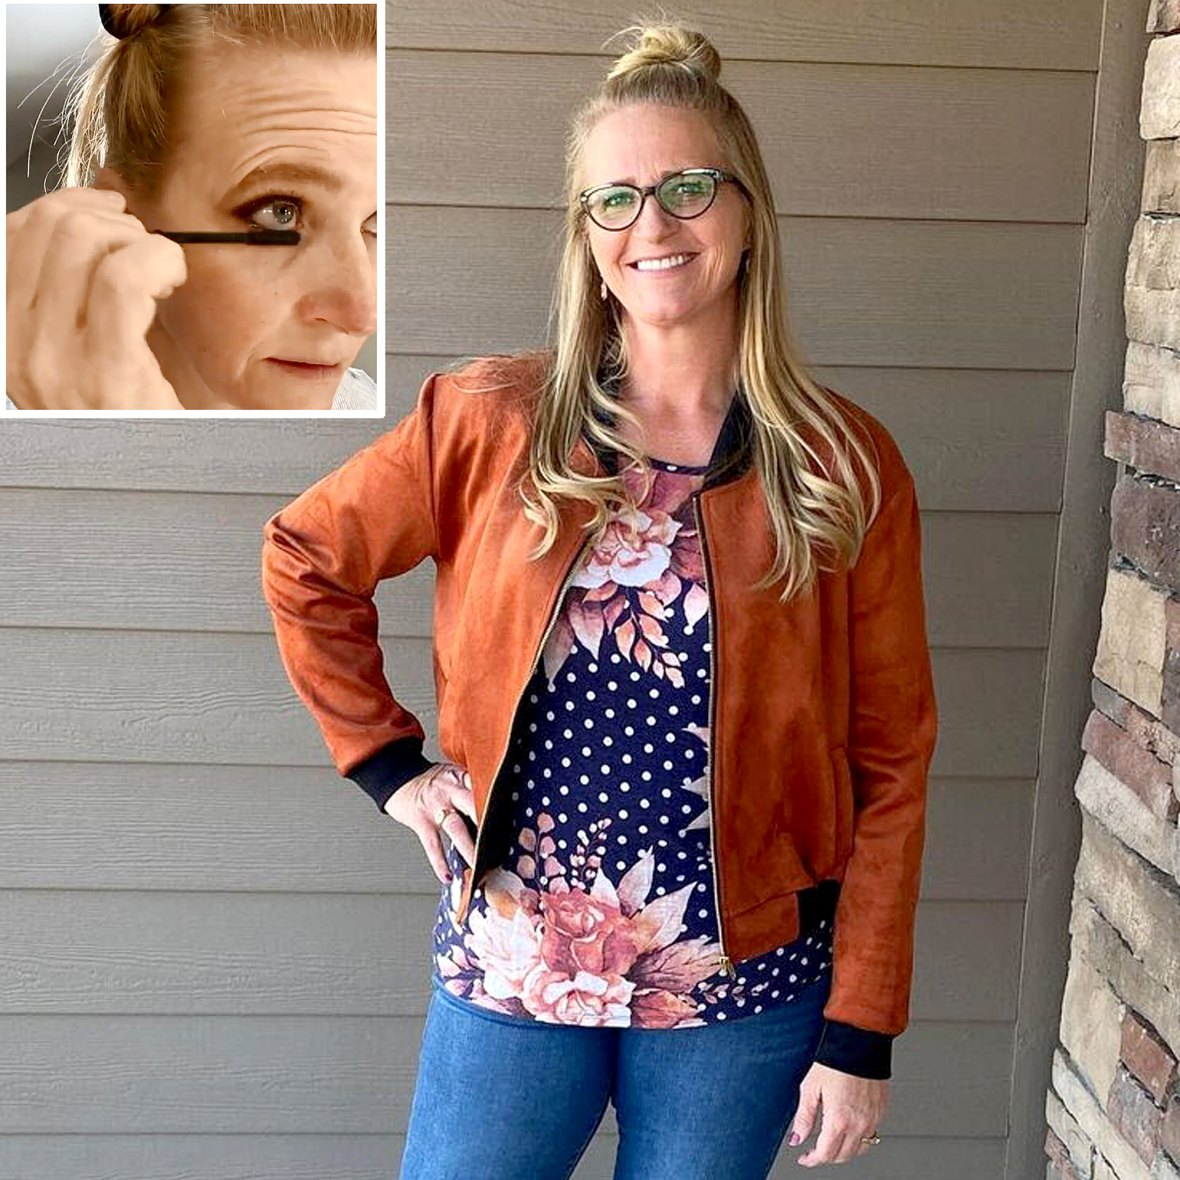 Sister Wives Star Christine Brown Shows Off Makeup Routine Ahead Season 15 Premiere